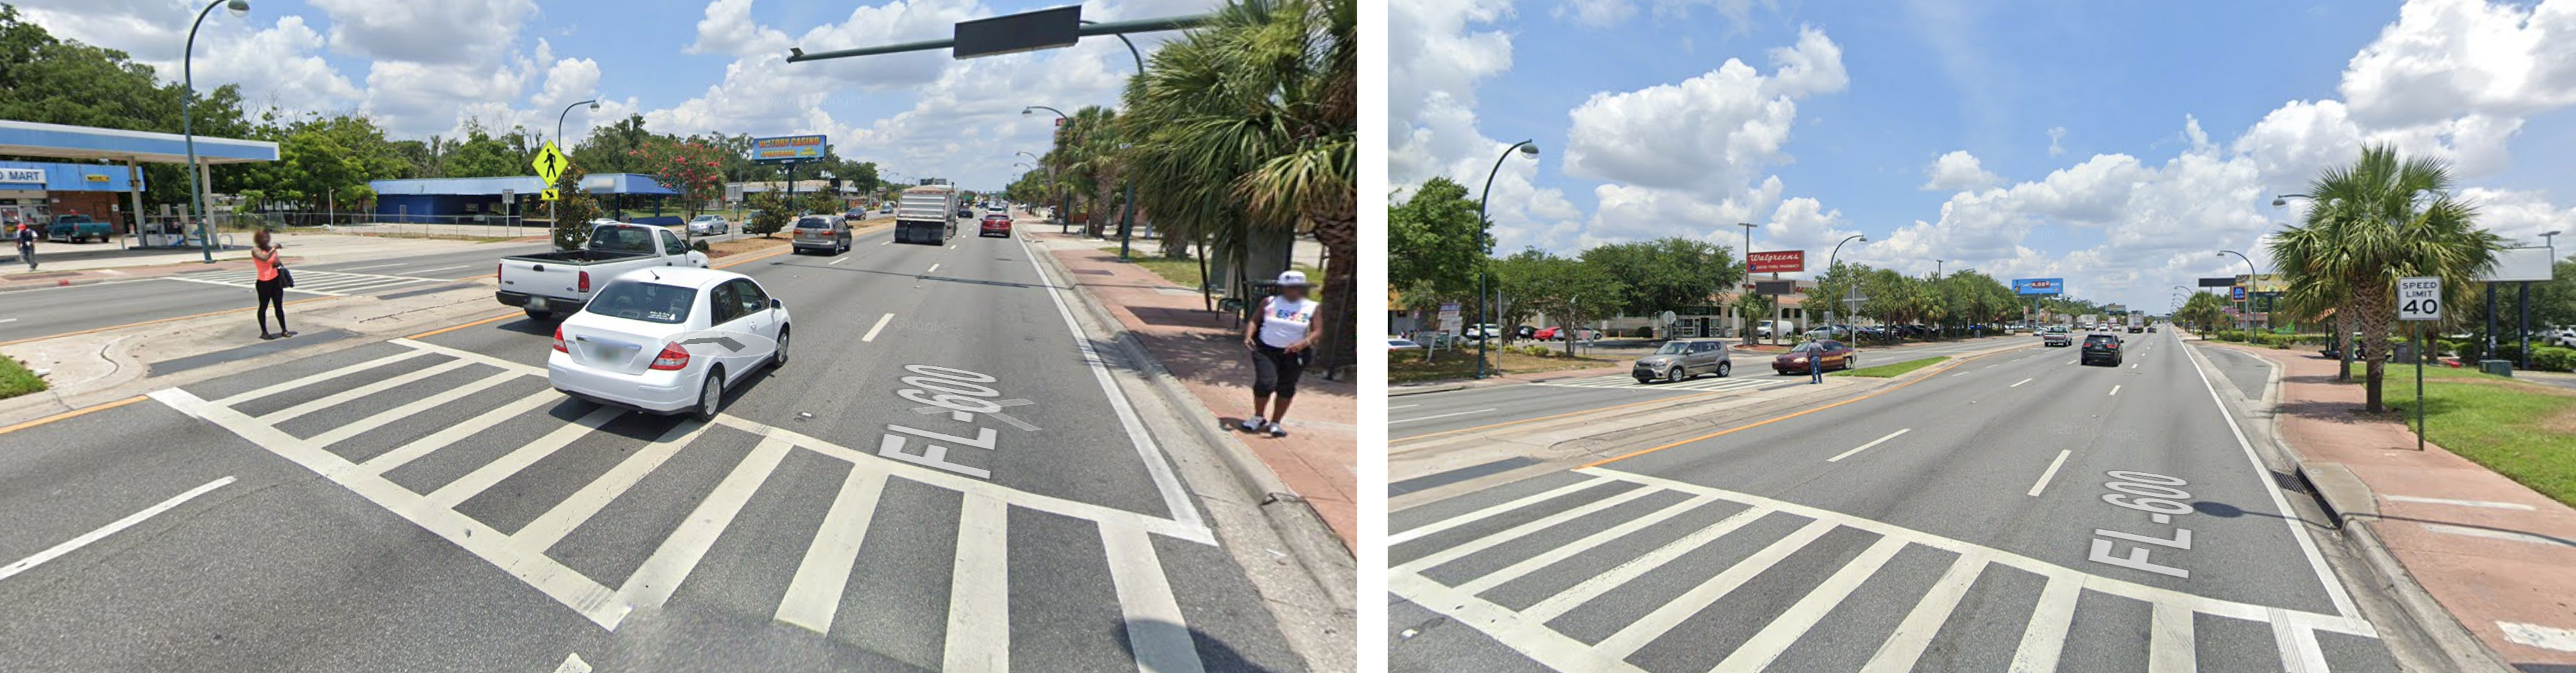 two images showing pedestrians attempting to cross the street.